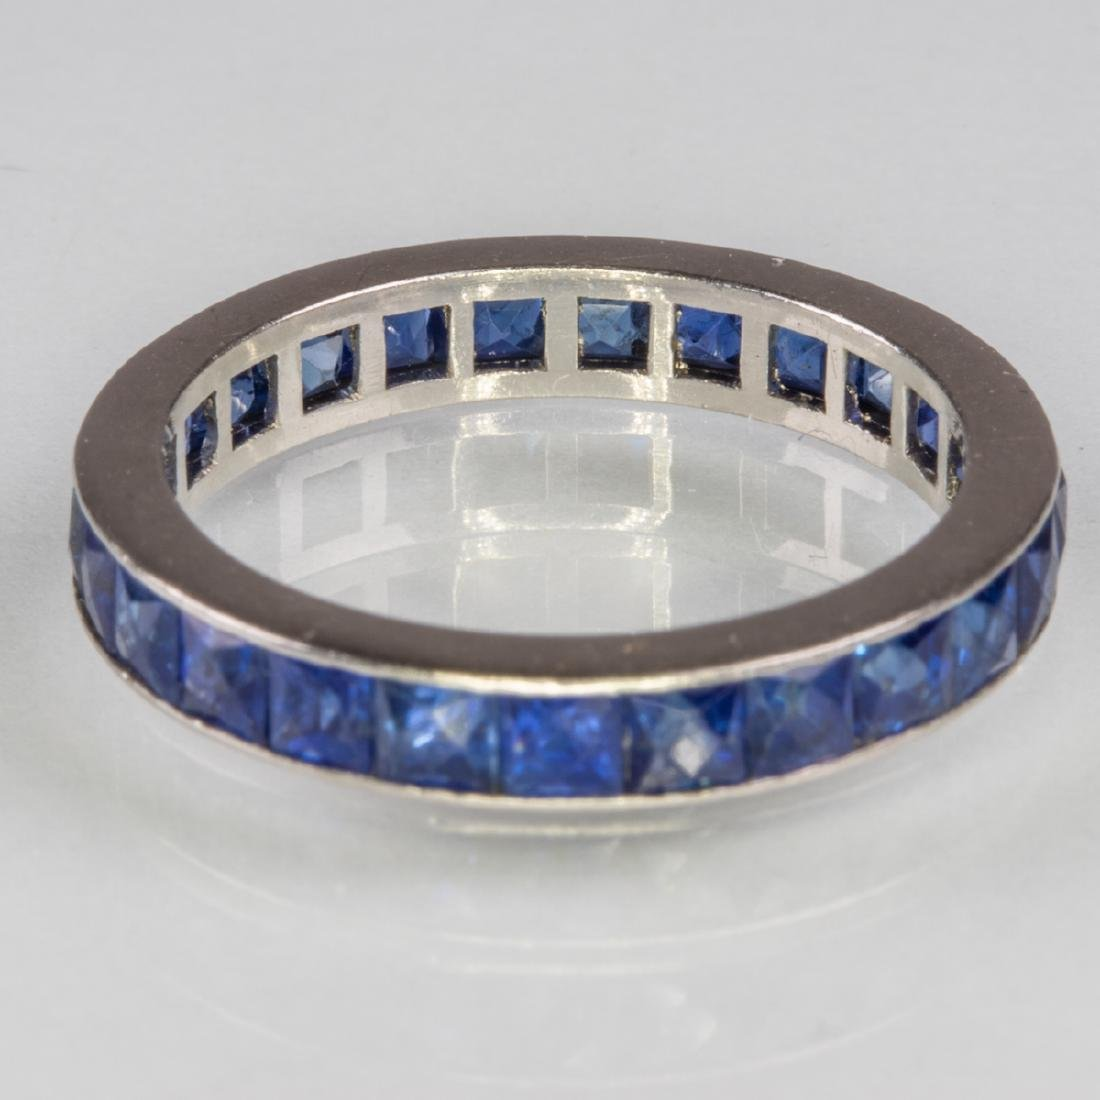 A 14kt. White Gold and Sapphire Eternity Band, - 4